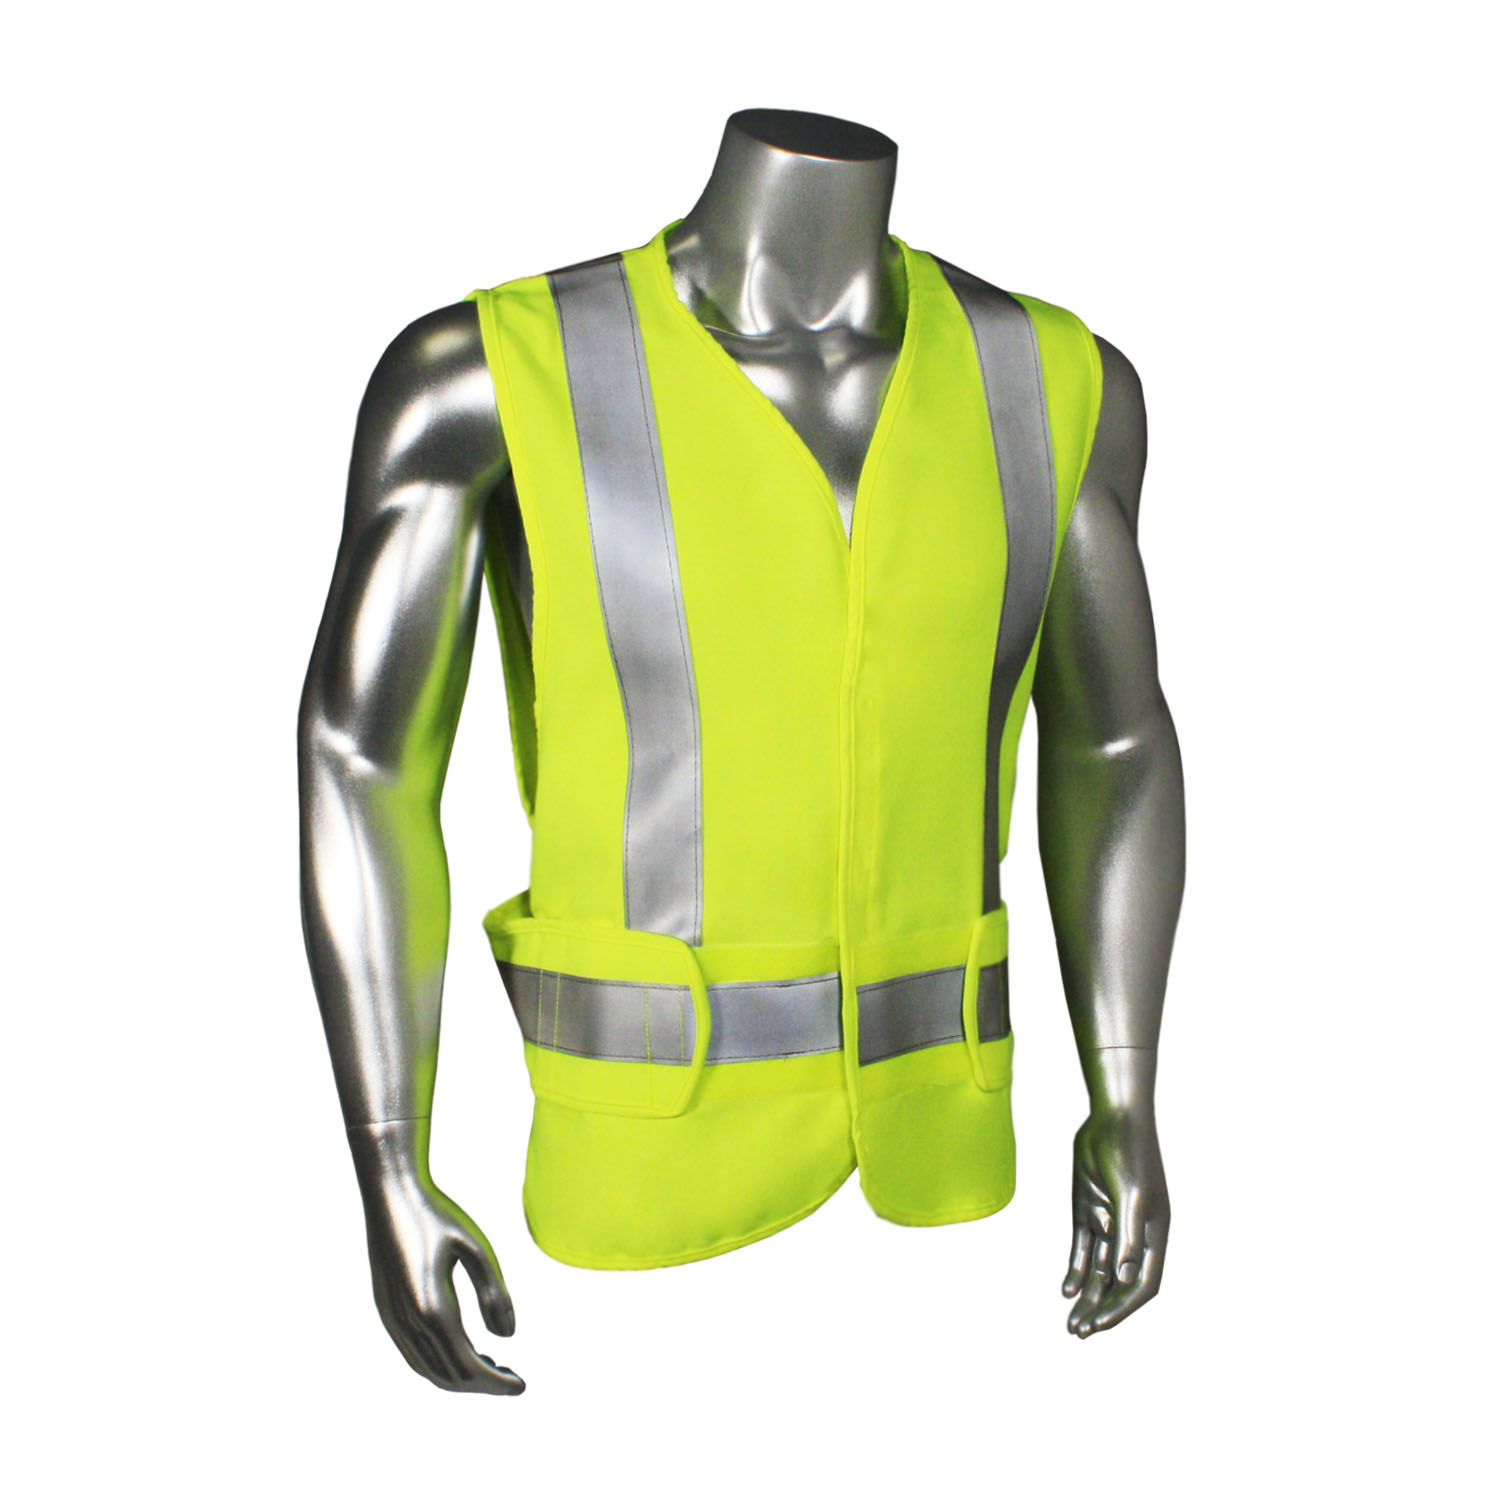 Radwear USA LHV-UTL-A Fire Retardant Safety Vest